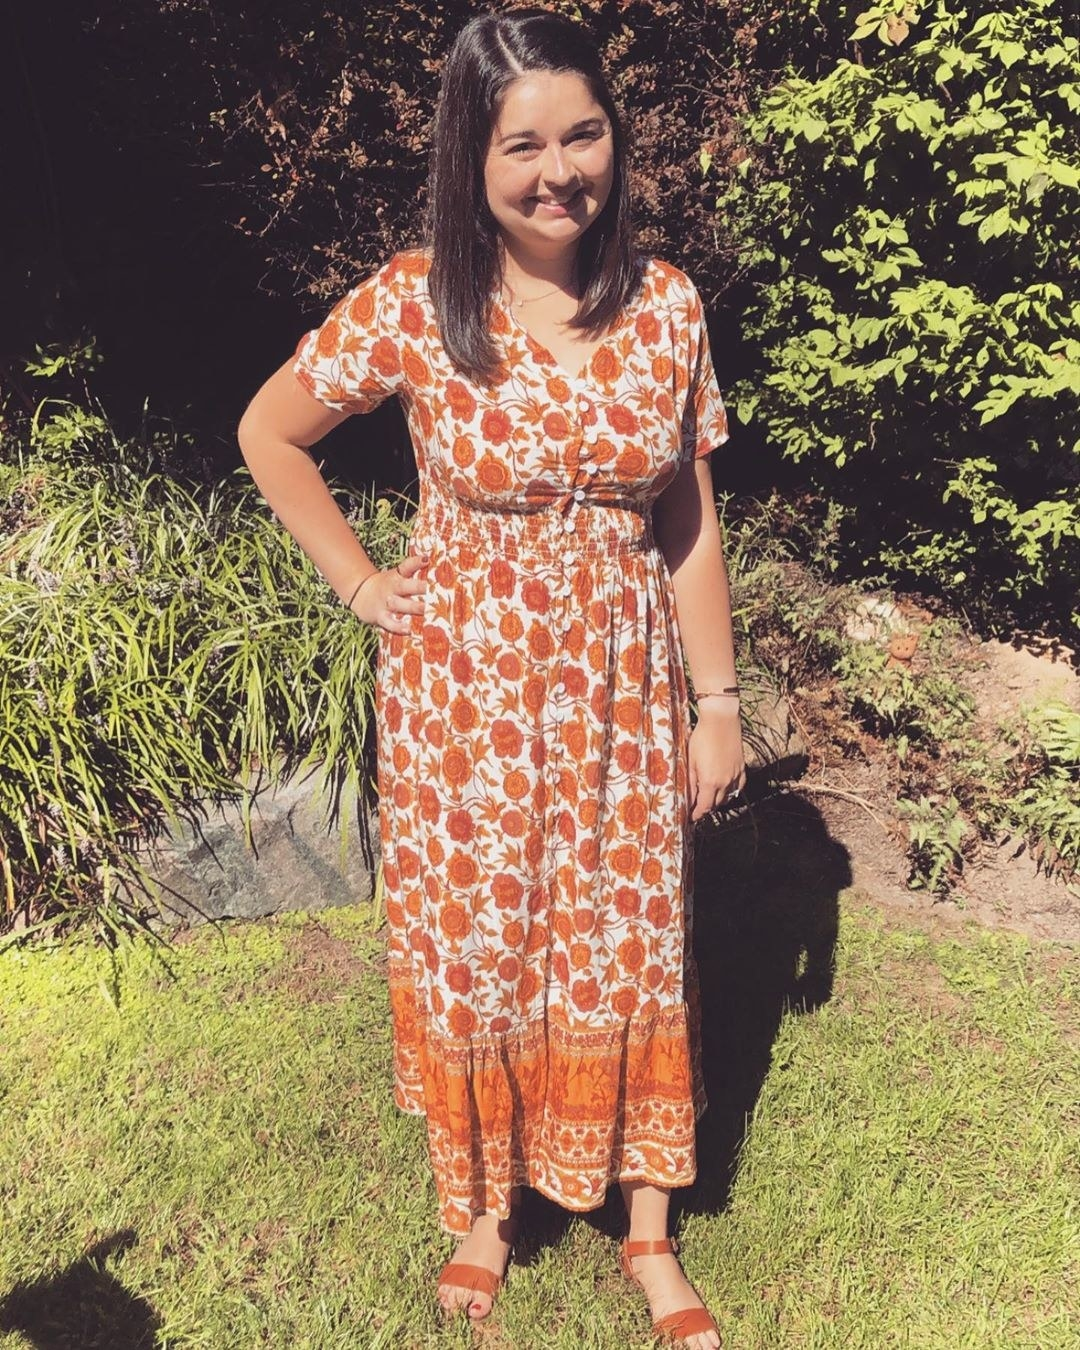 buzzfeed editor wearing a button-up orange midi dress with a floral pattern